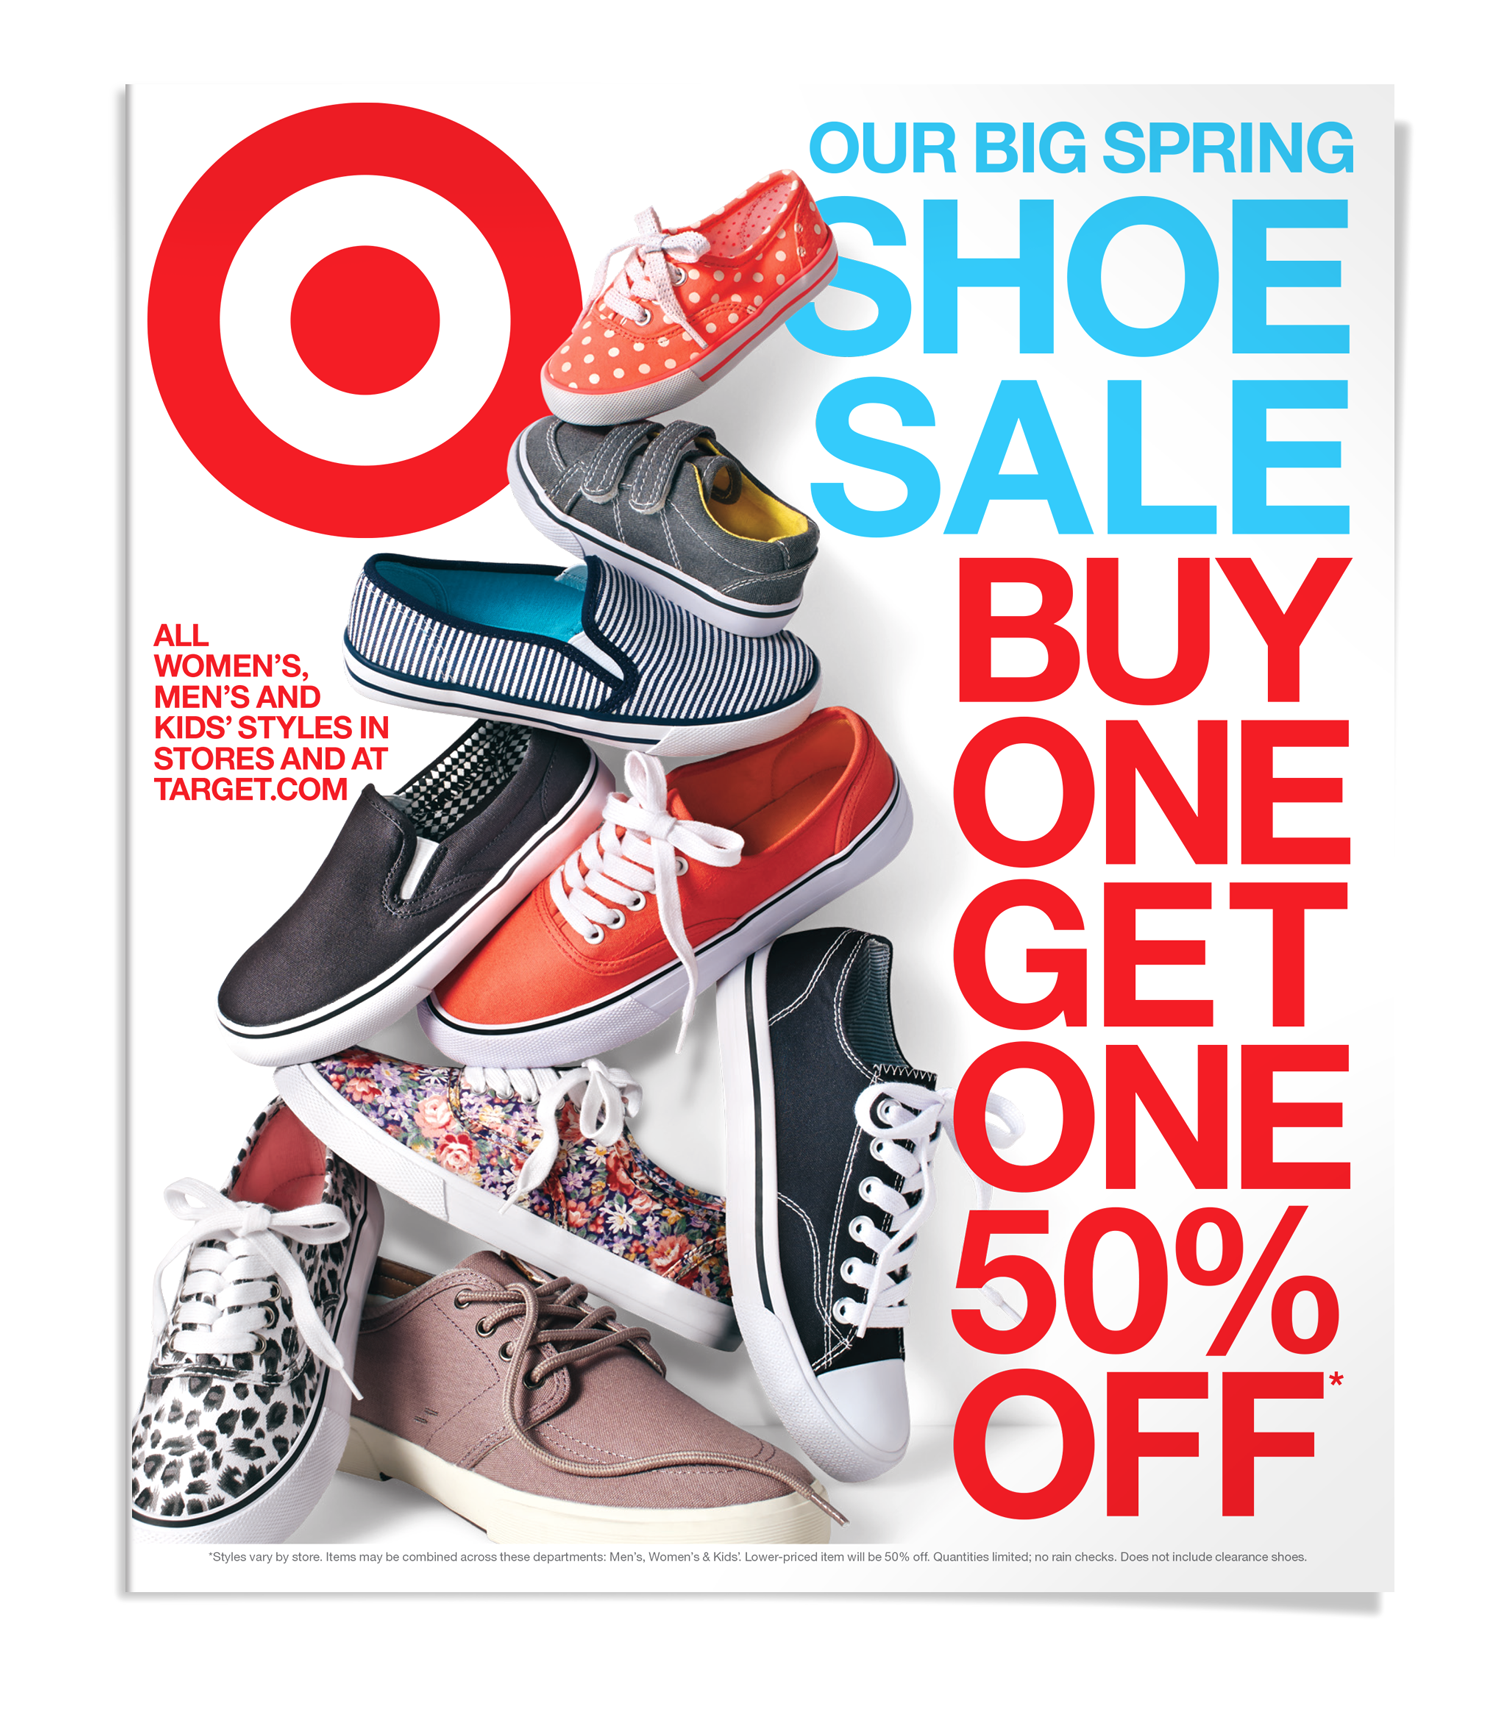 target weekly ad covers elizabeth kimble art director designer